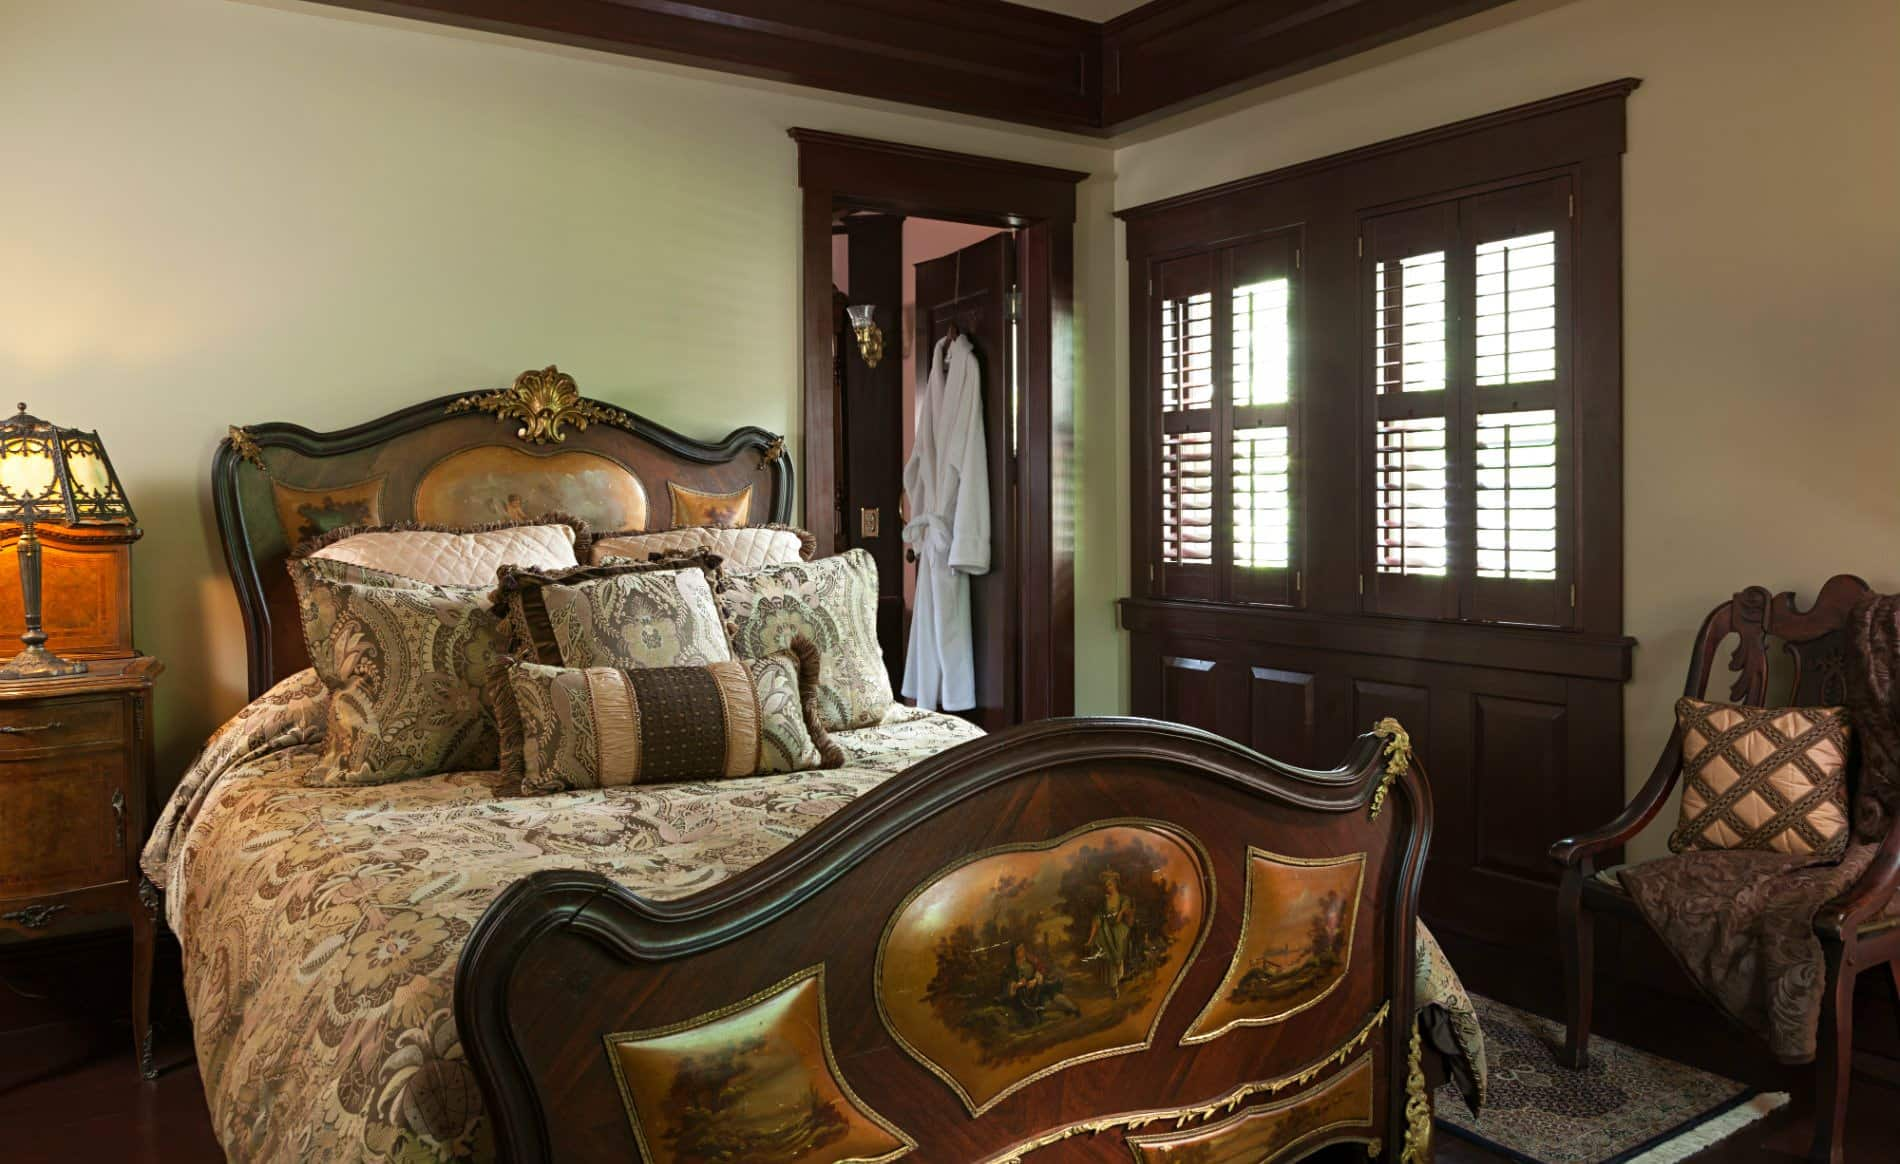 Beige room with dark stained trim and doors, wood floors, elaborate bed and a nightstand with antique lamp